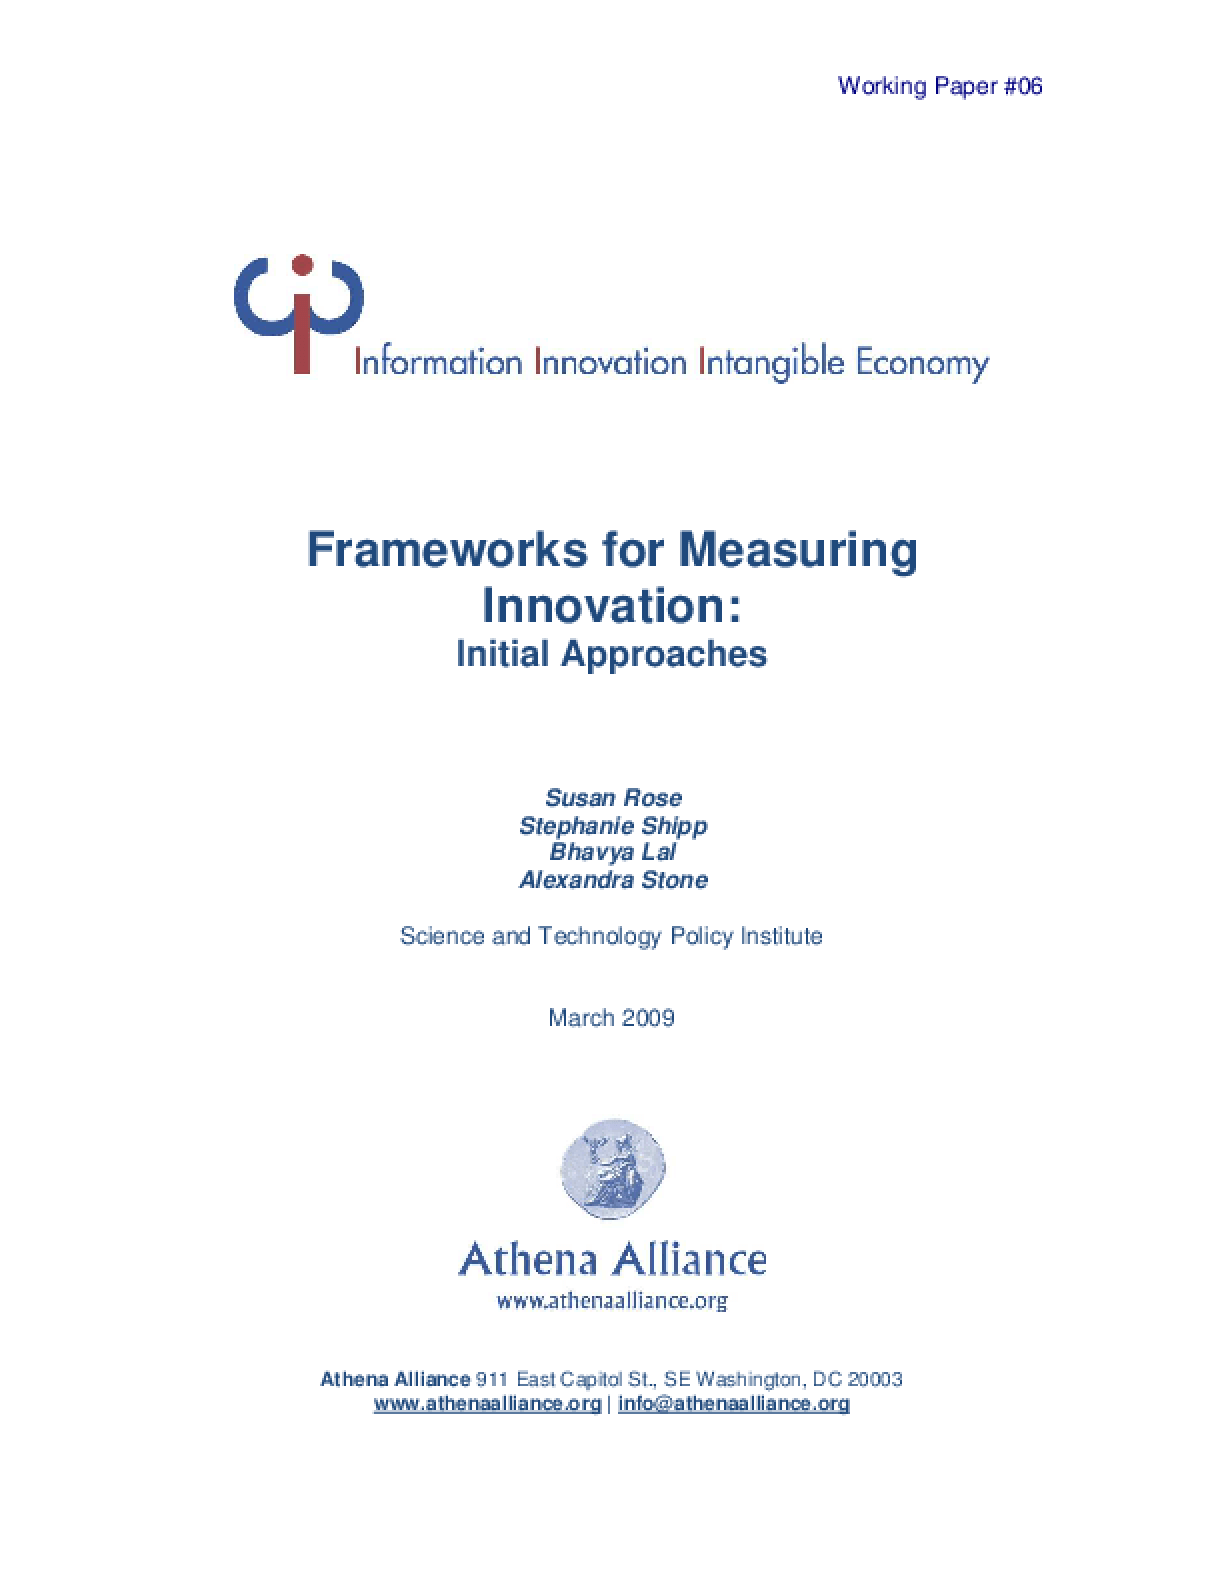 Frameworks for Measuring Innovation: Initial Approaches